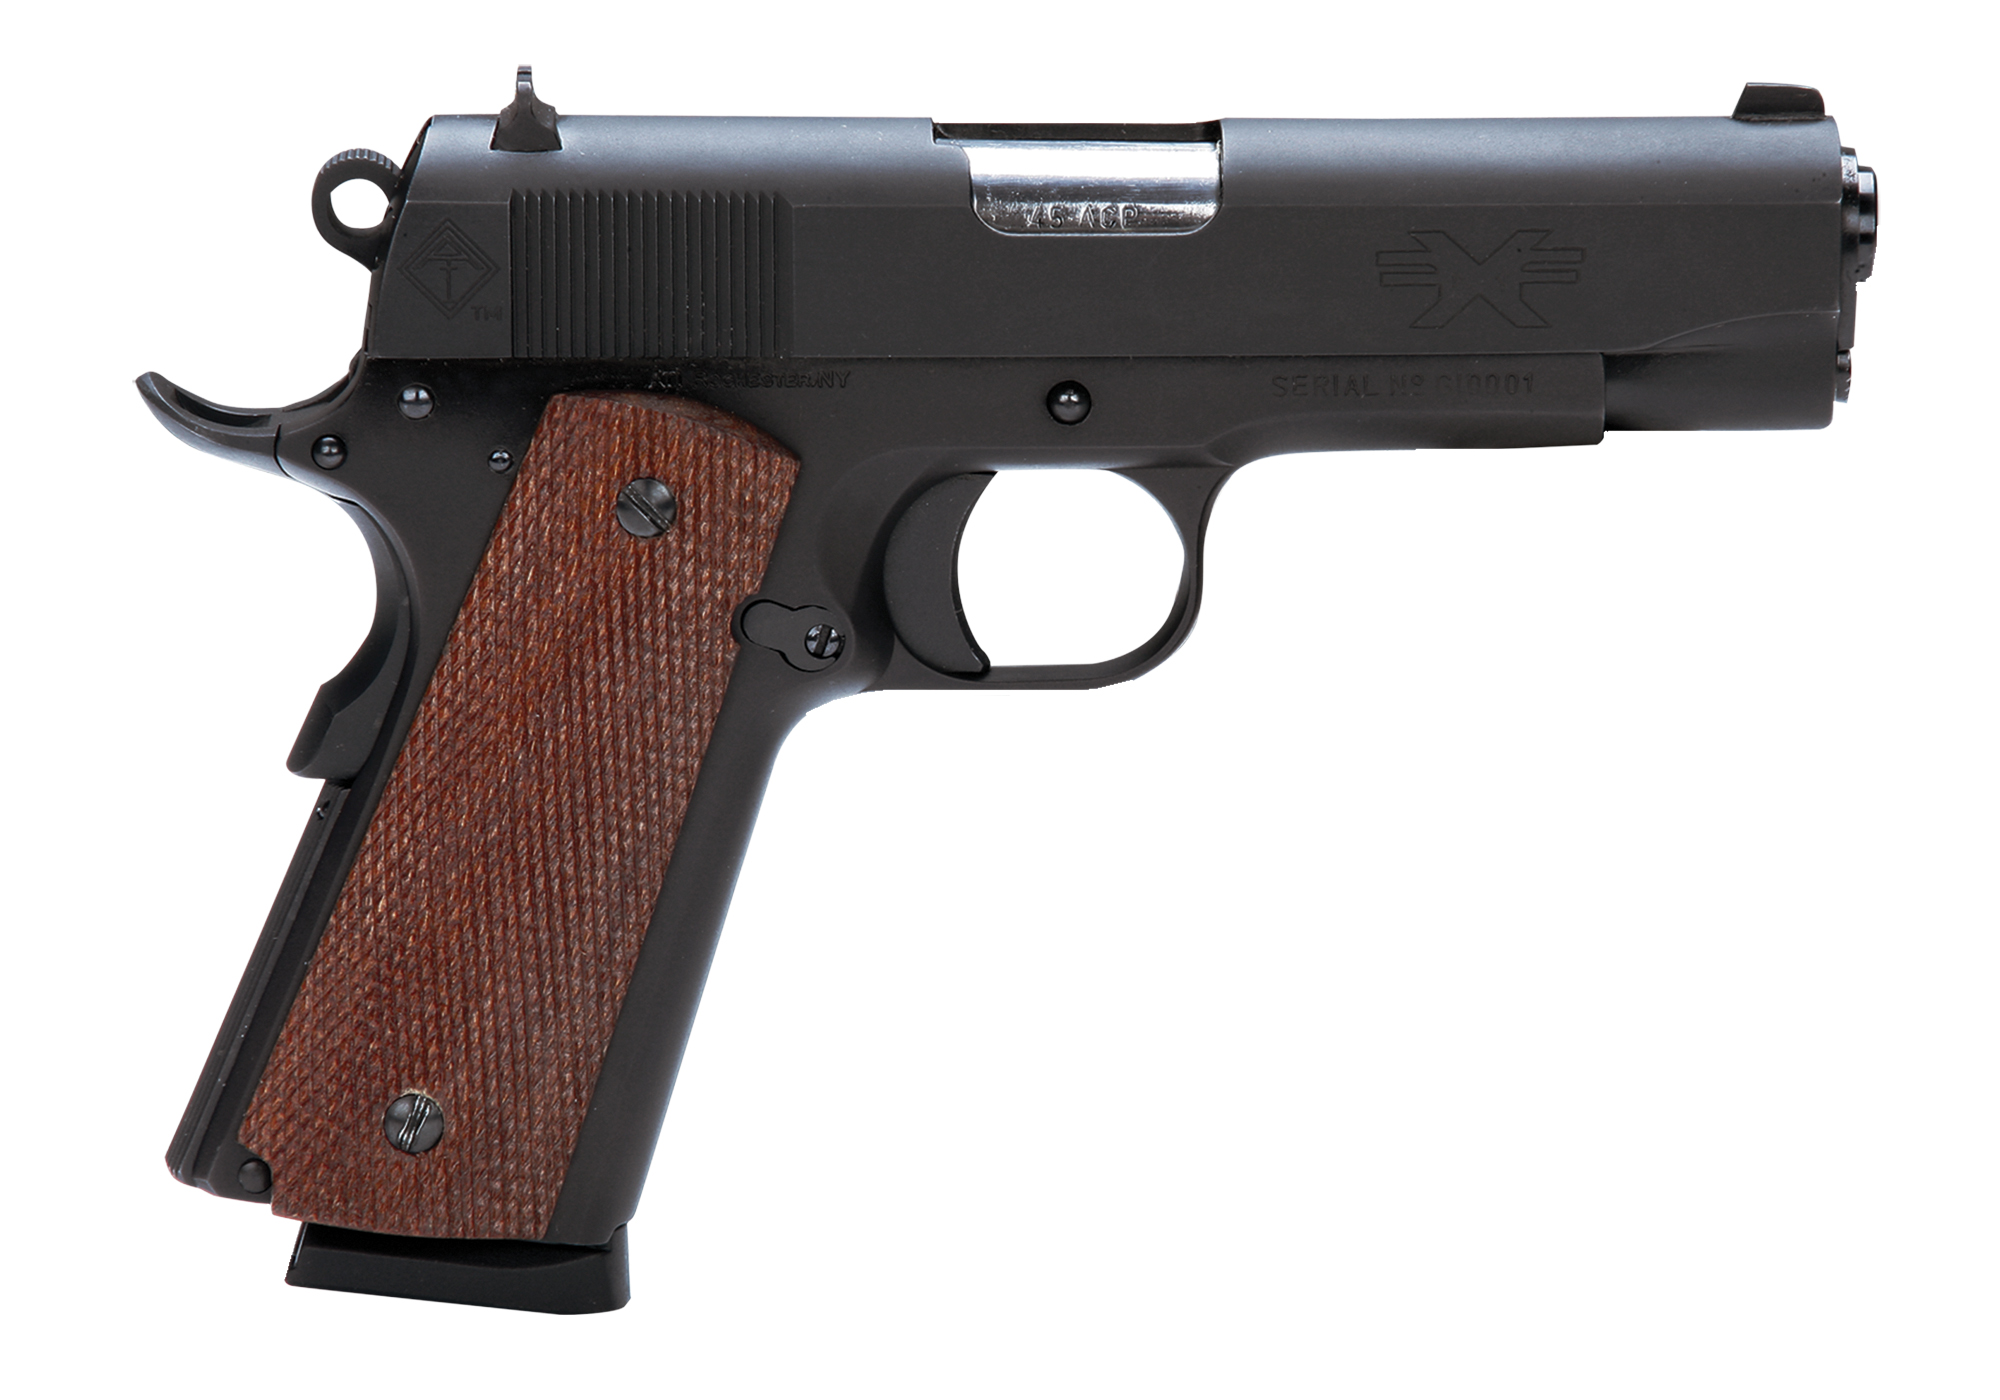 Firepower Xtreme 1911 Military